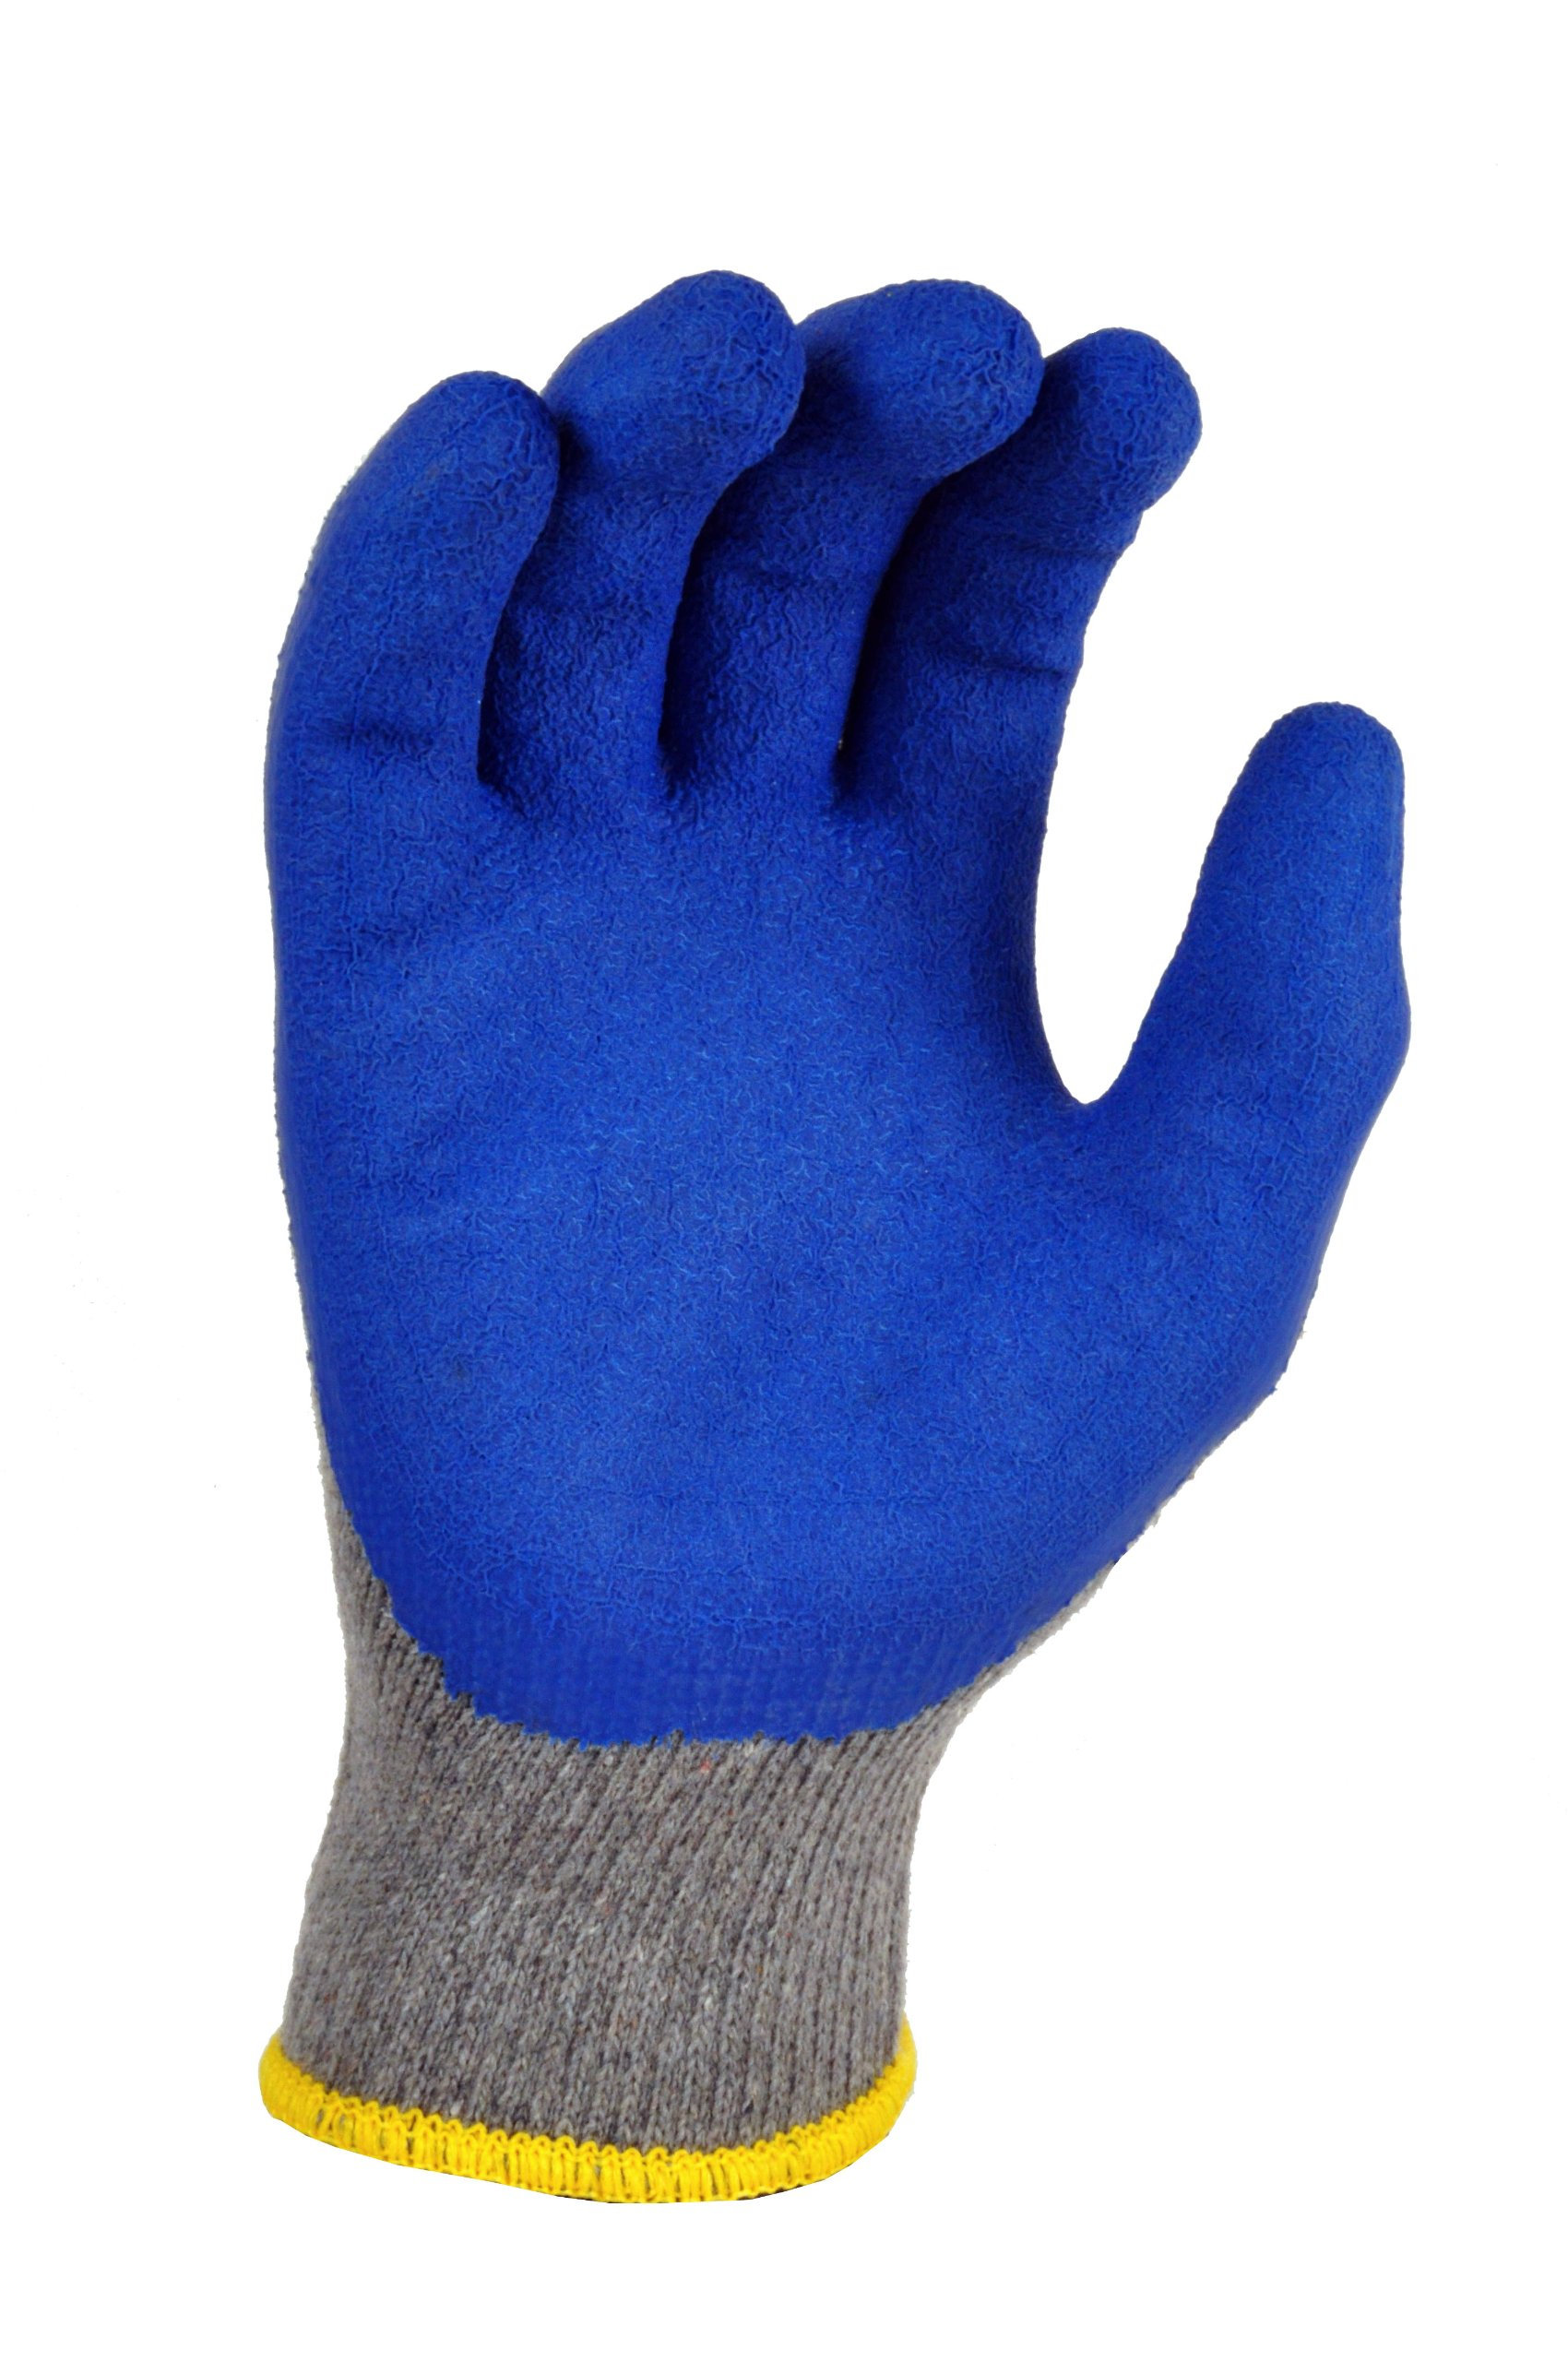 G & F 3100XL-10 Rubber Latex Coated Work Gloves for Construction, Blue, Crinkle Pattern, Men's XLarge (120 Pairs)